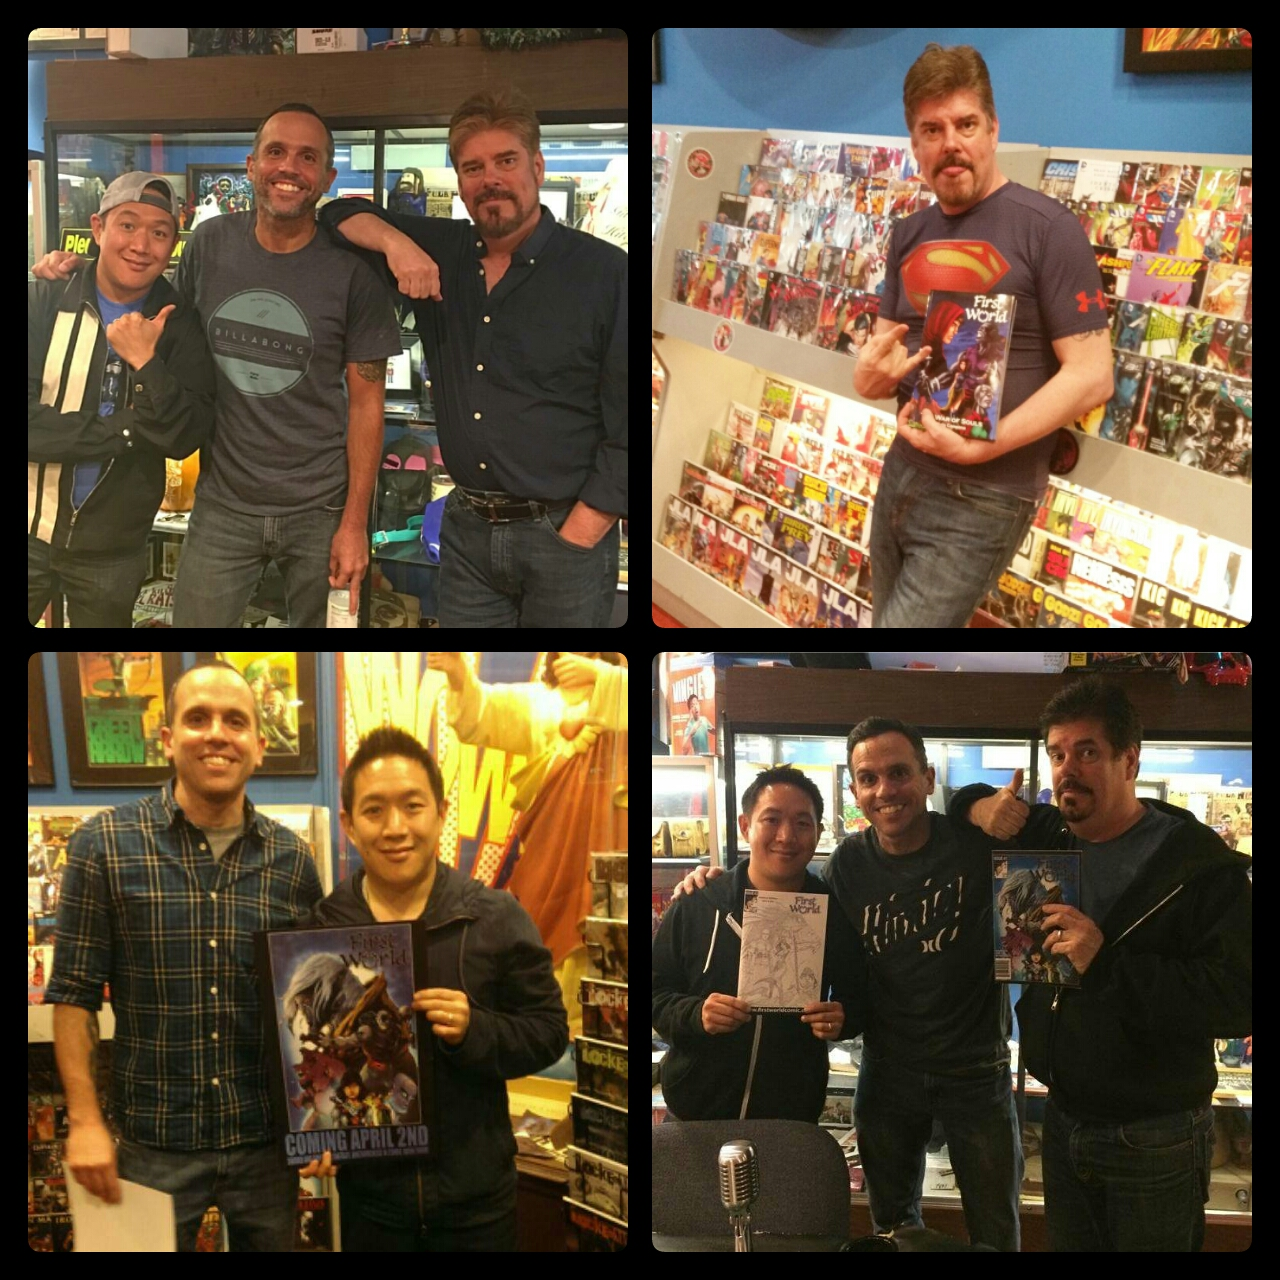 Chris Campana, Ming Chen, Mike Zapcic, Comic Book Men